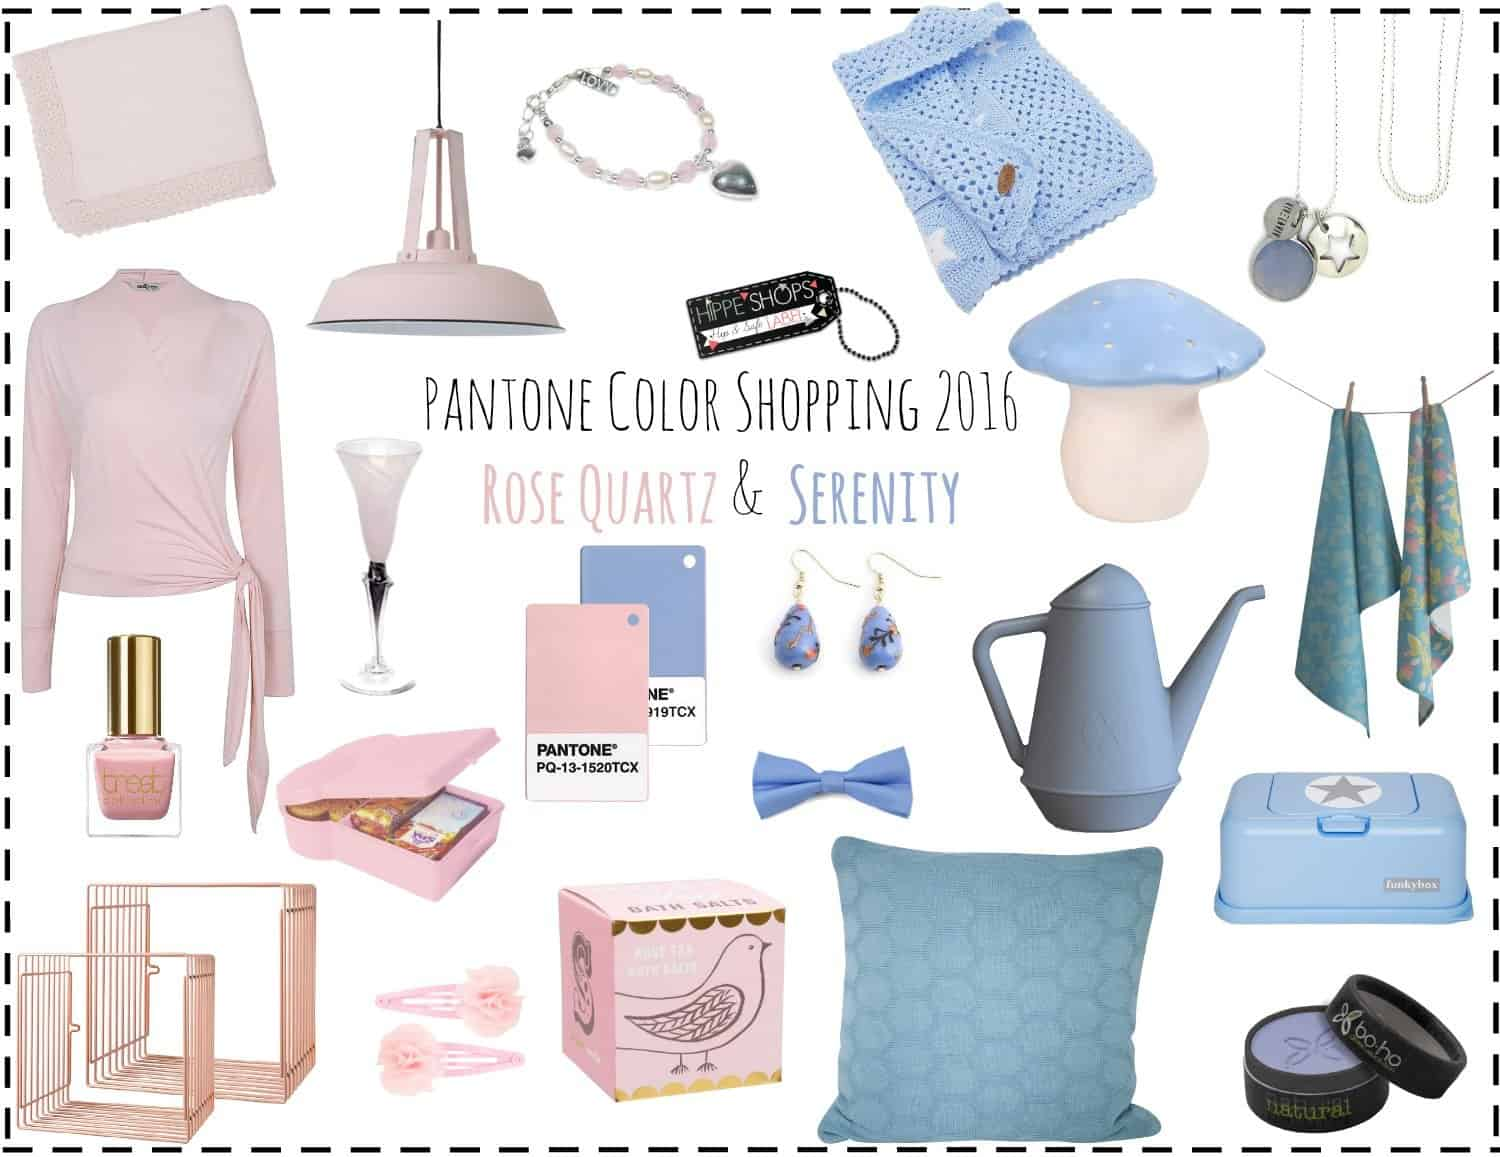 Rose Quartz & Serenity color shopping: Pantone 2016 trendkleuren